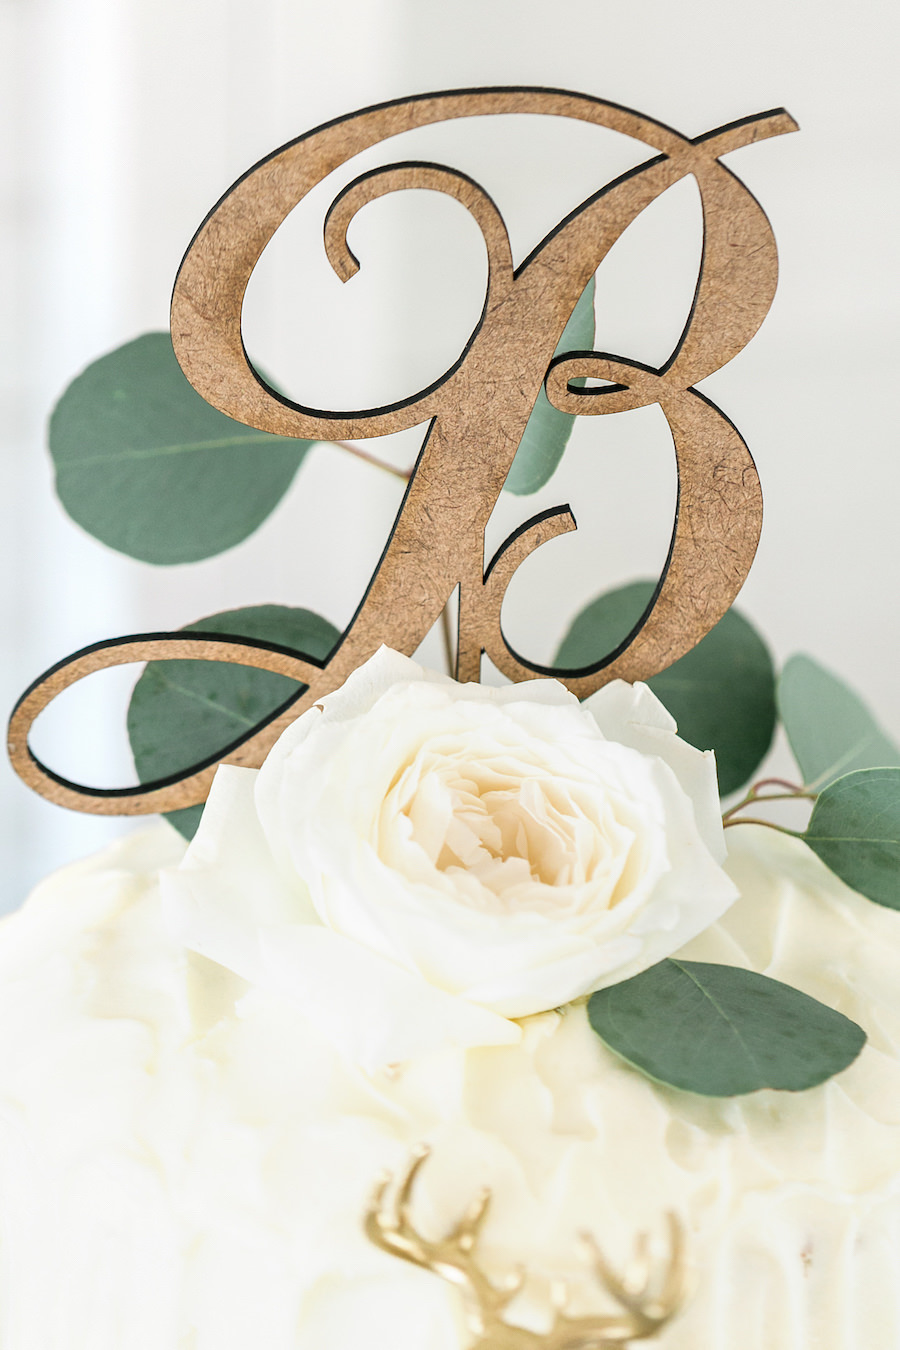 Wooden Initial Wedding Cake Topper with Greenery   Rustic, Country Wedding Reception Decor Inspiration